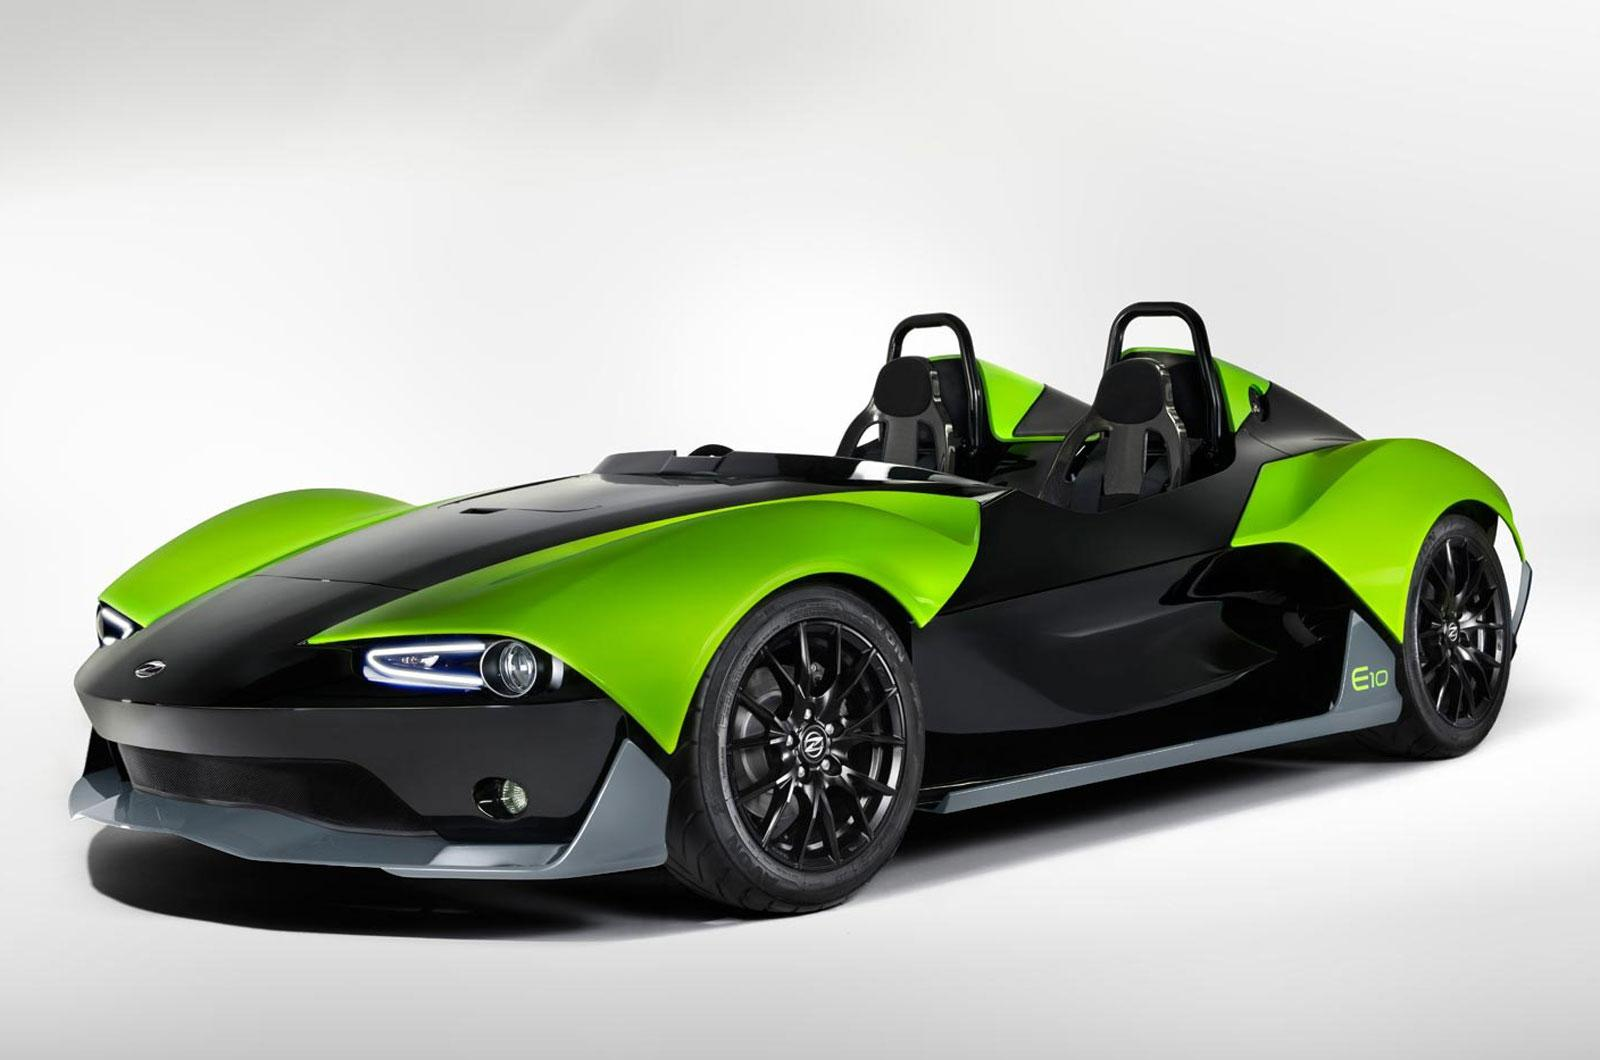 zenos e10 s follows in the footsteps of the caterham